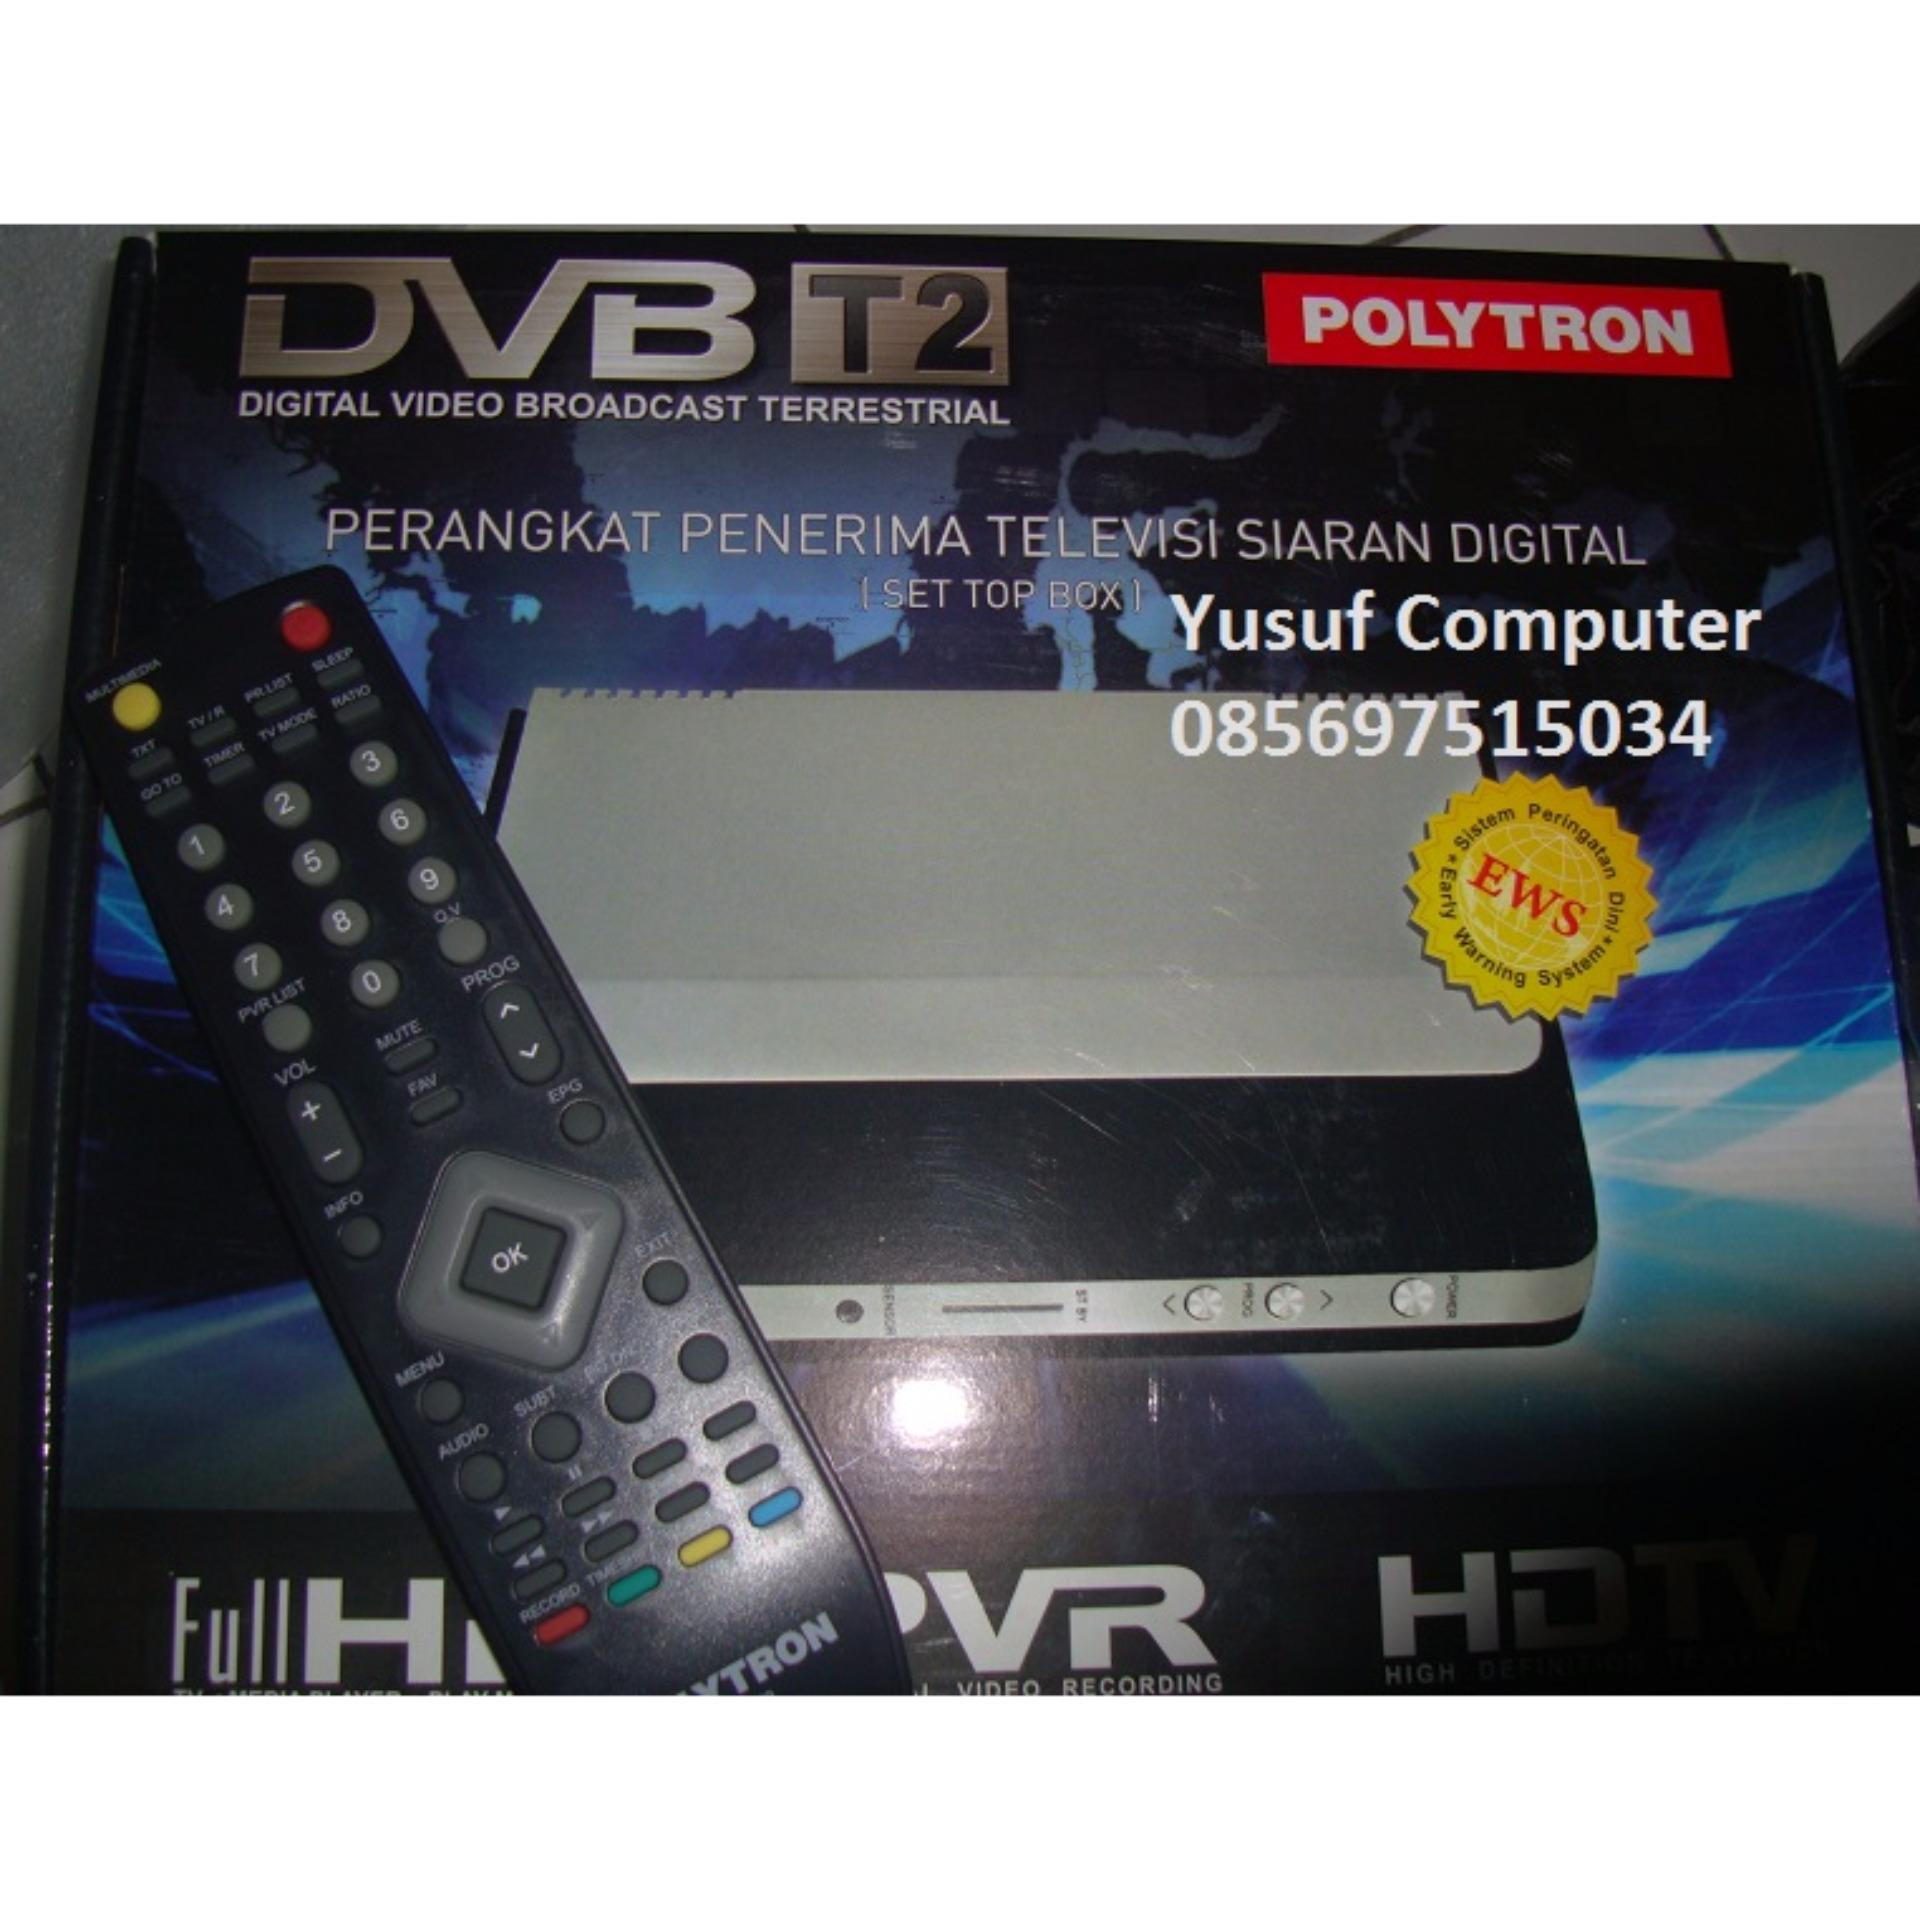 Polytron PDV500T2 Set Top Box DVB T2 TV Digital dan Media Player Hitam